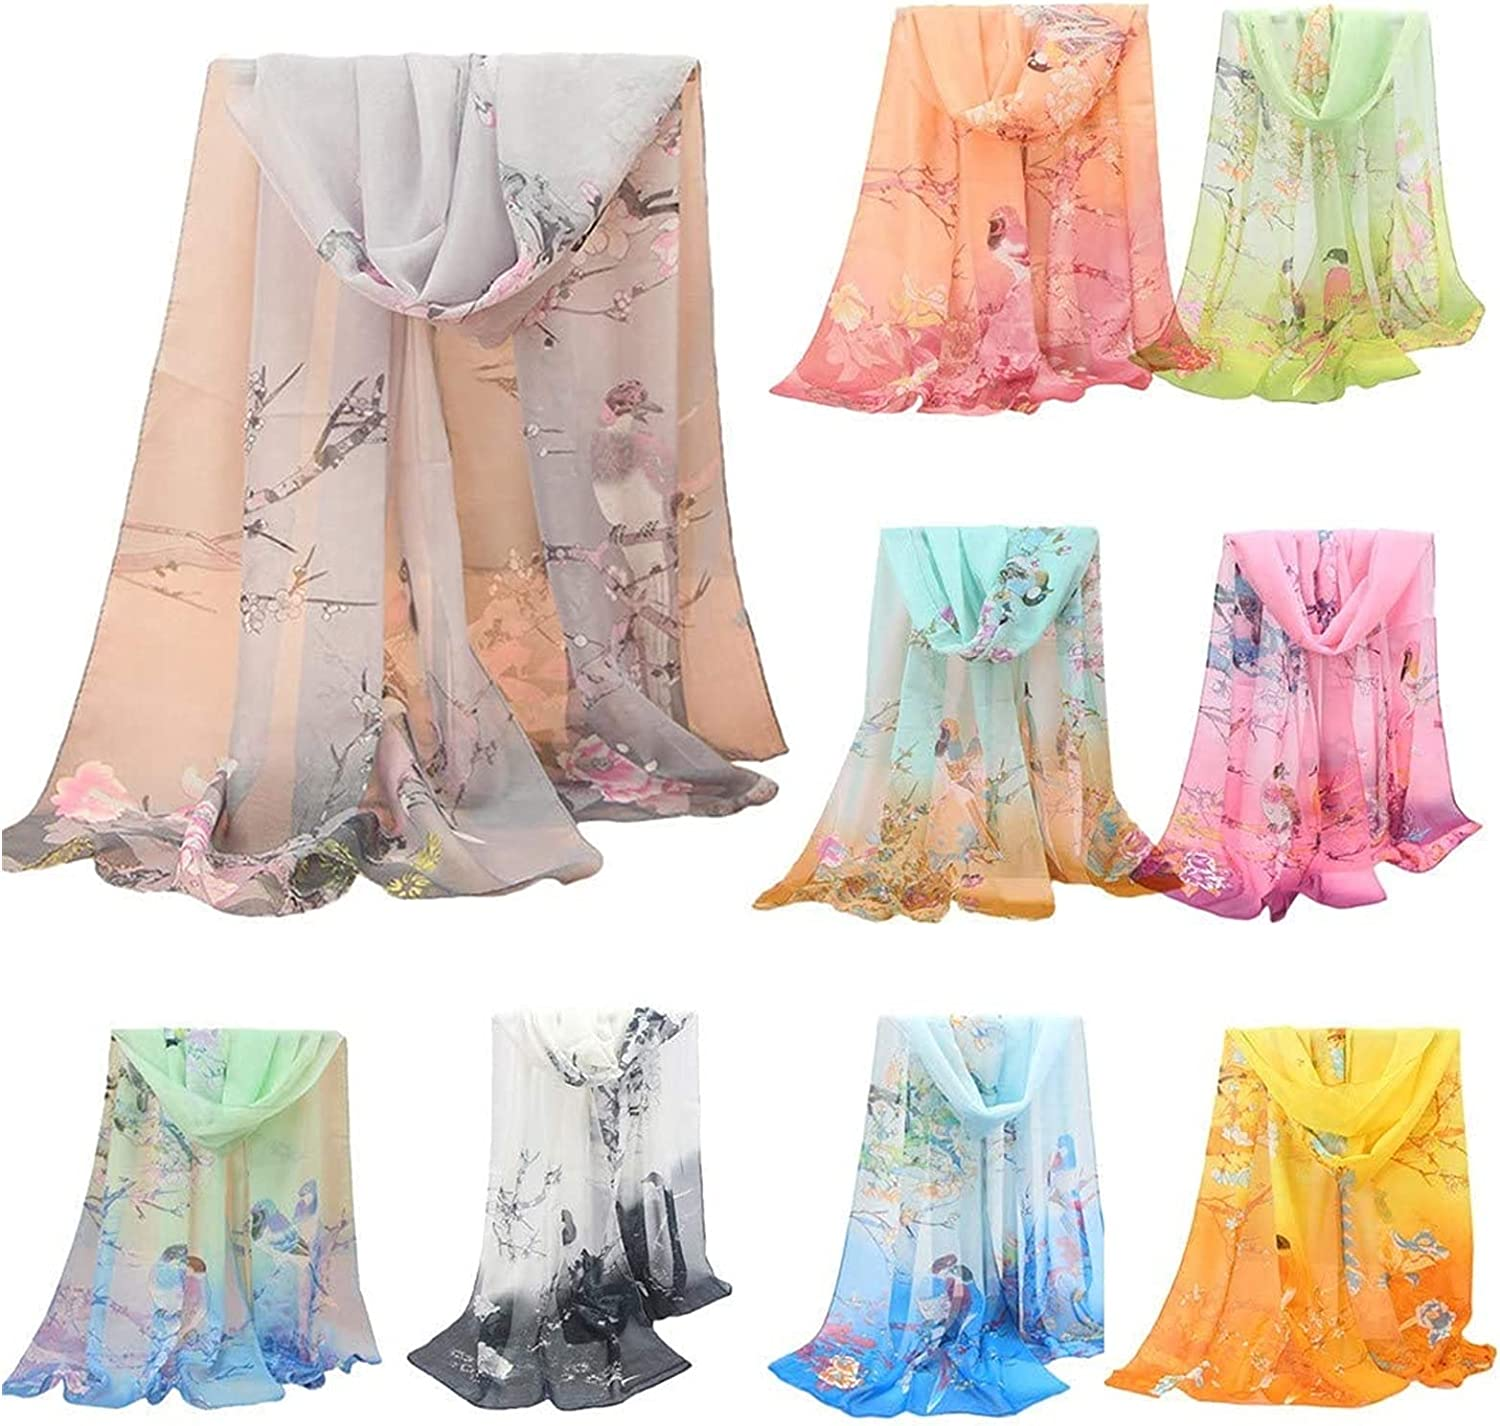 Popular shop is the lowest price challenge Seupeak Women Scarves Fashion Fort Worth Mall Jacquard Long Wrap Soft Sca